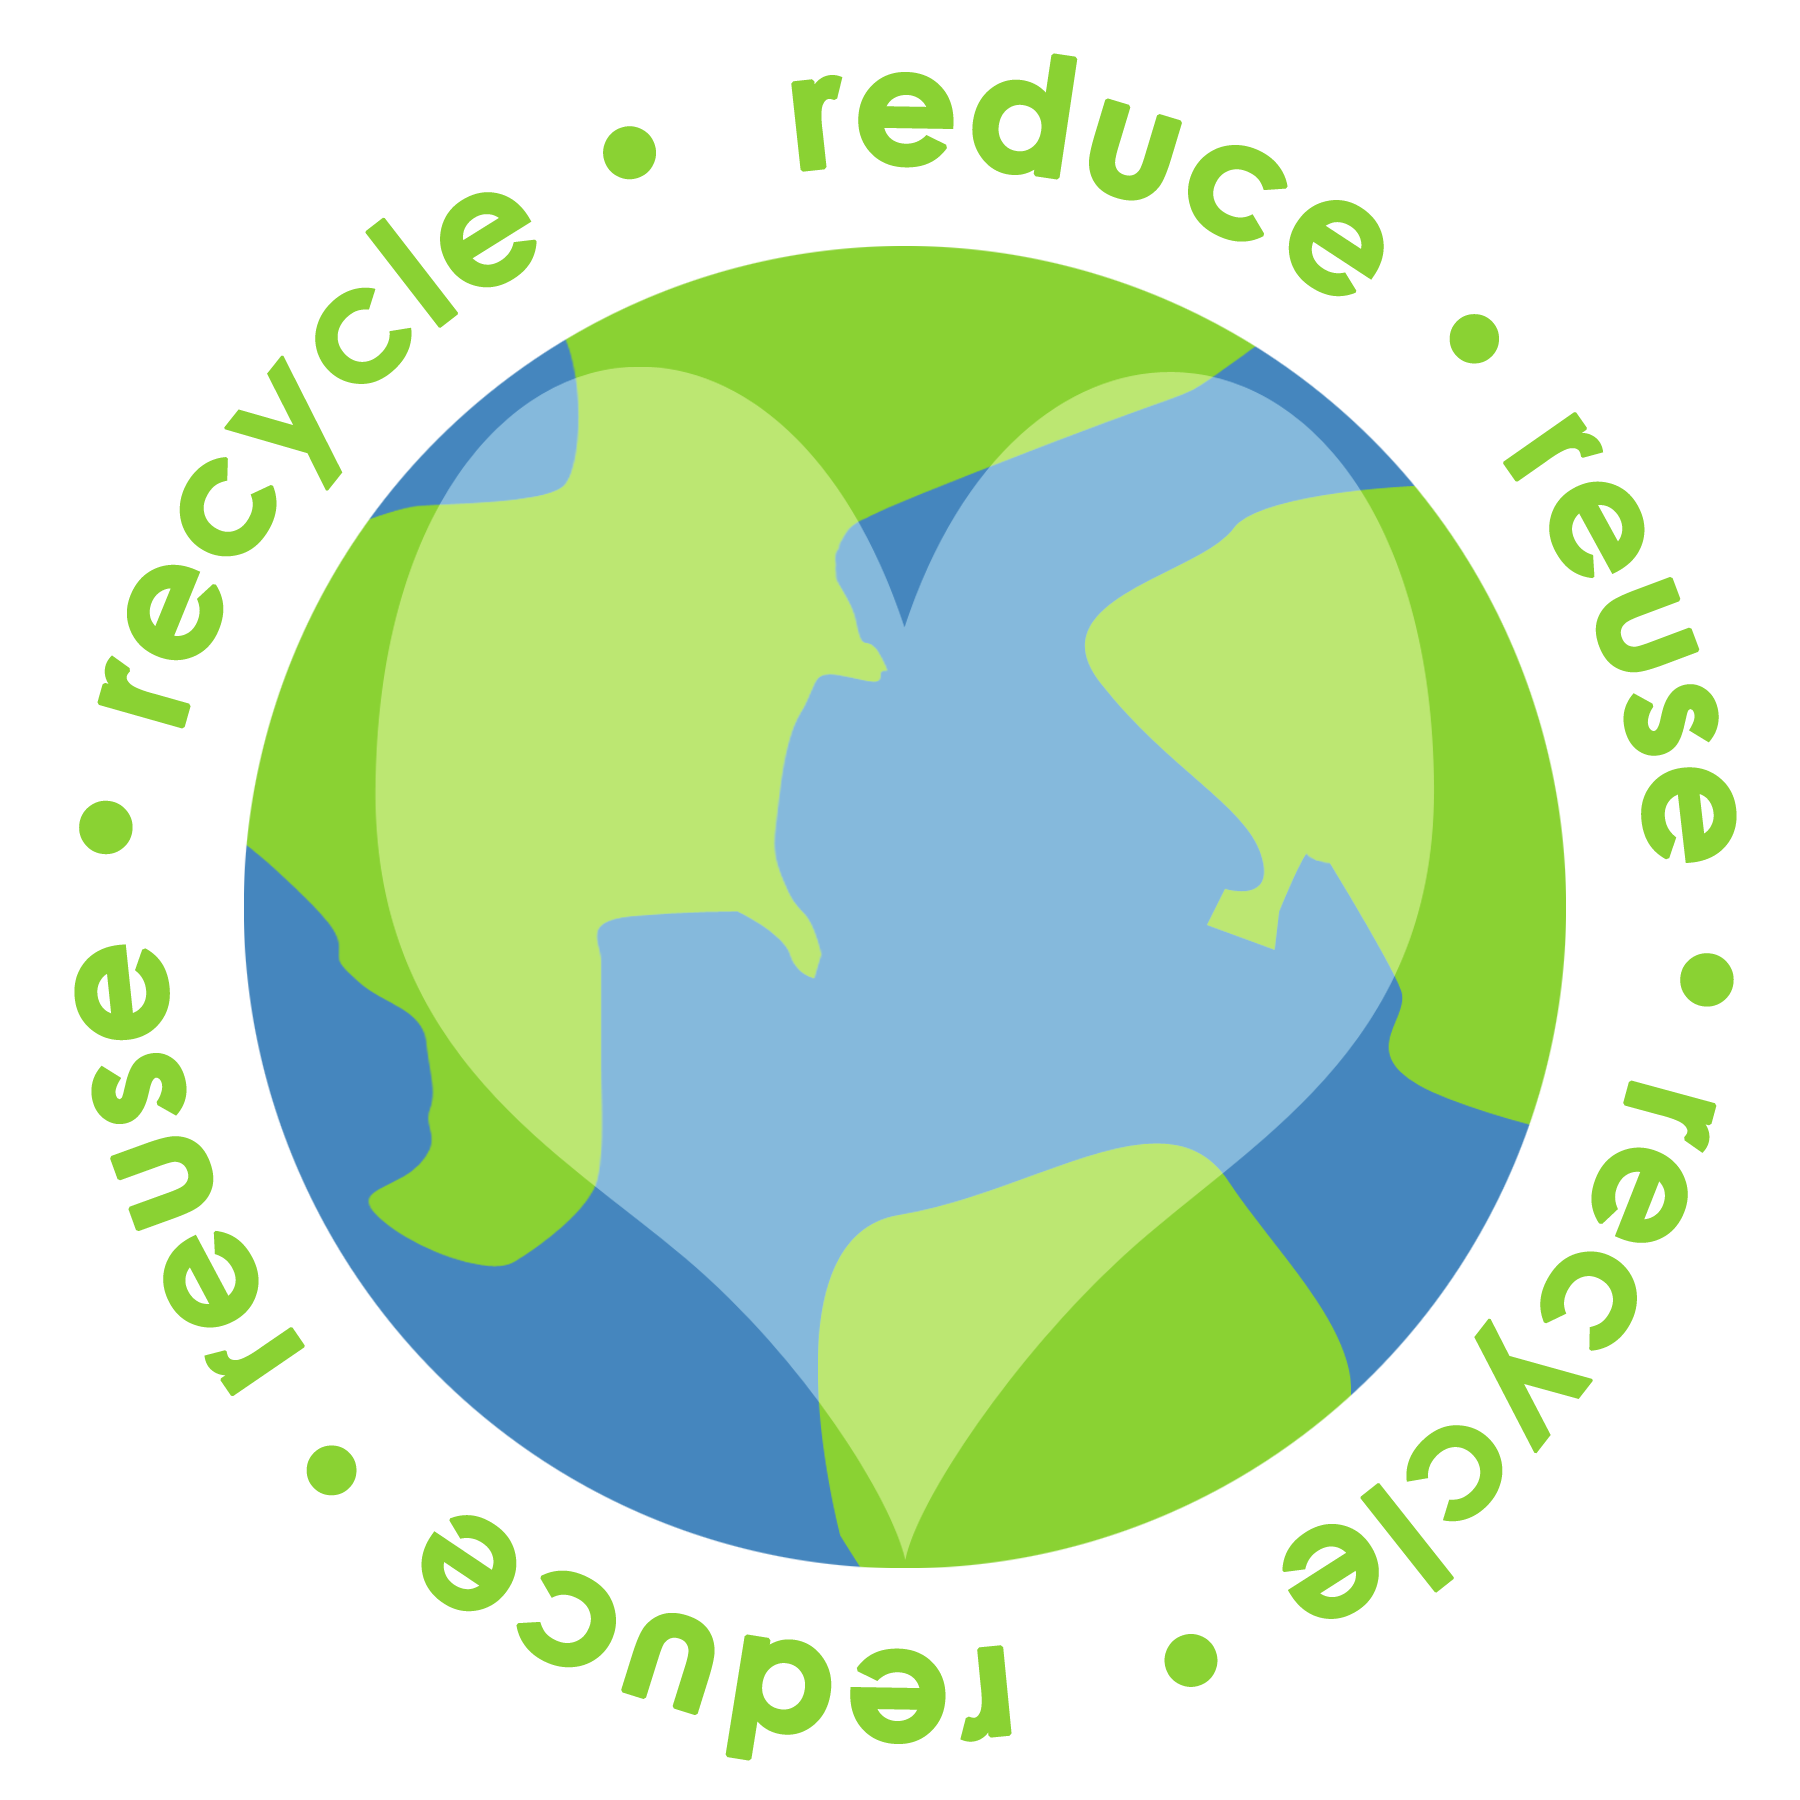 1800x1800 Reduce Reuse Recycle Earth Png Transparent Reduce Reuse Recycle